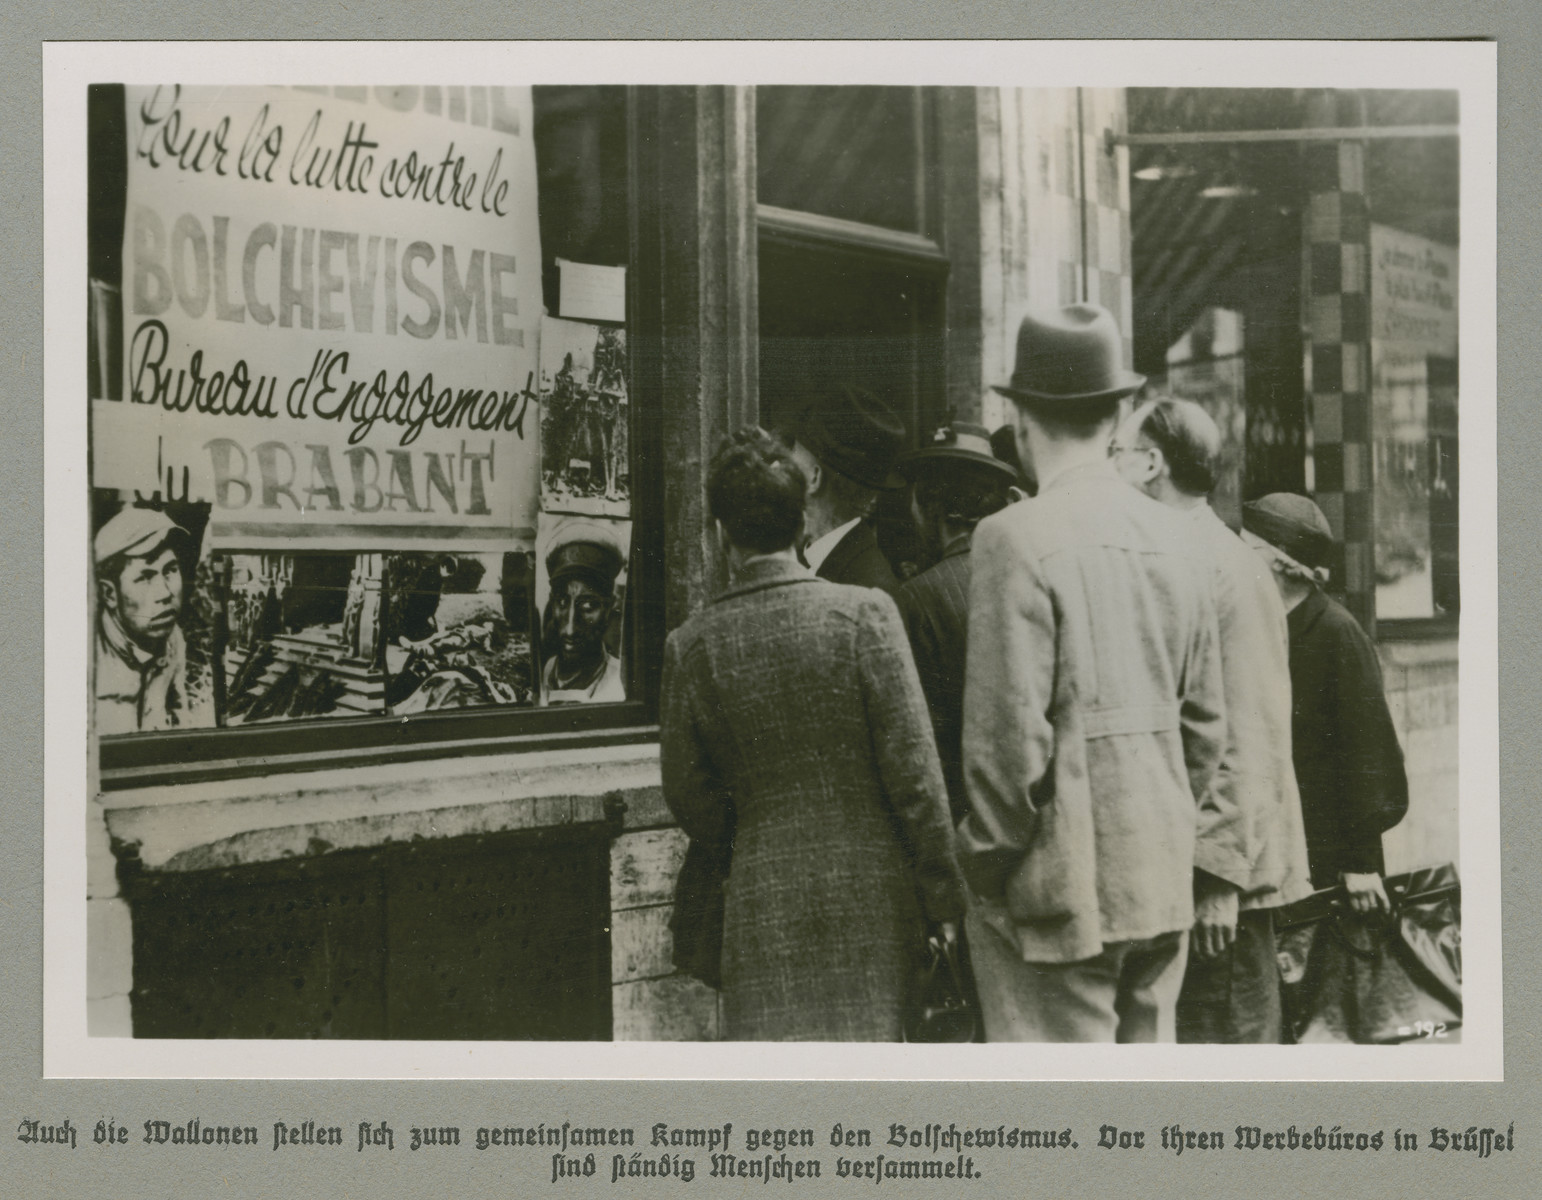 Men and women view anti-Bolshevist propaganda in a storefront window.   Original caption reads: The Walloons also confront the collective struggle against Bolshevism. People are always gathered outside your (party) advertising agency in Brussels.